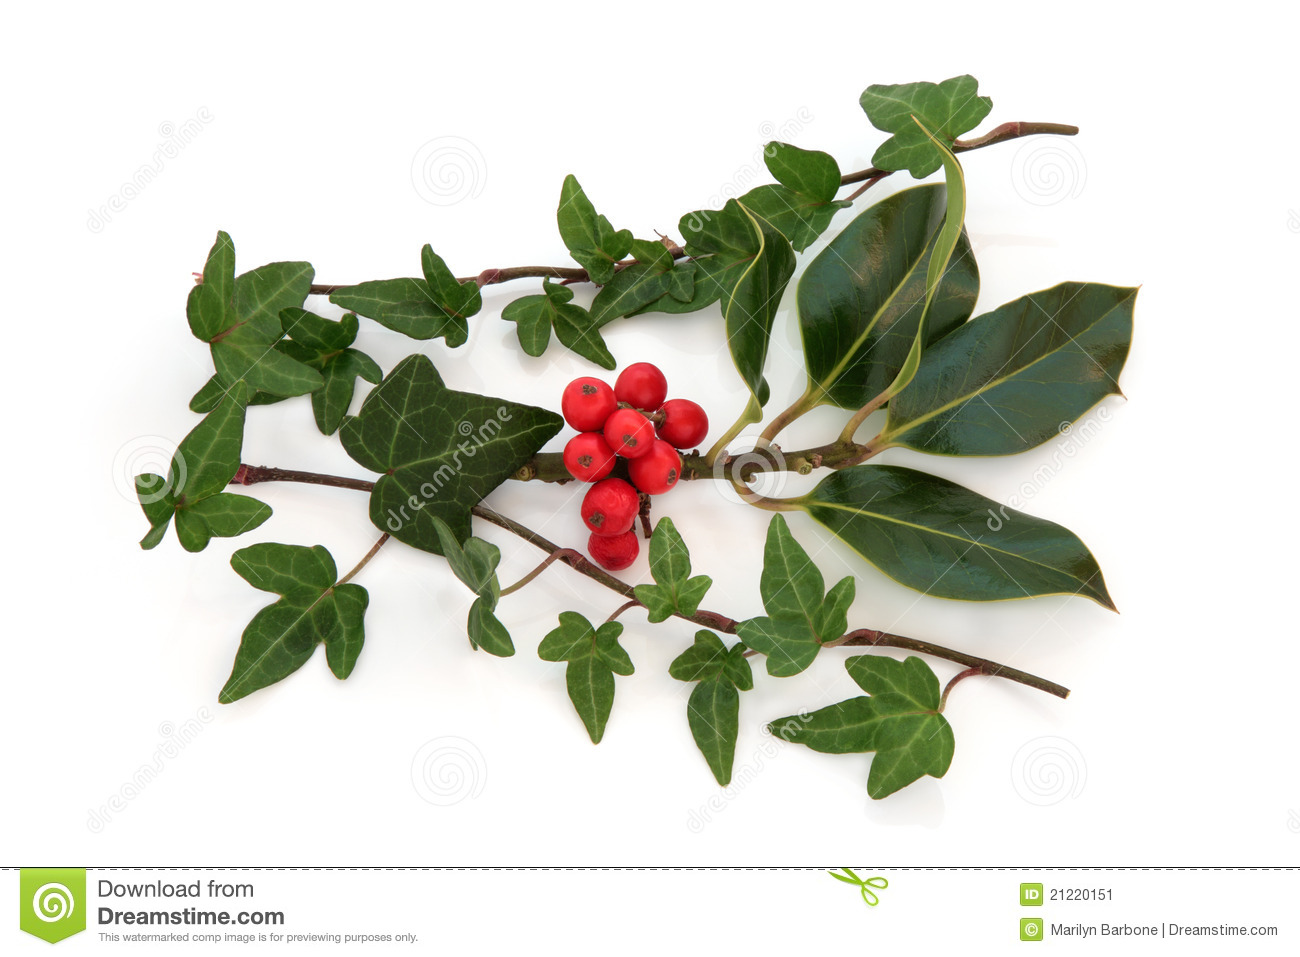 Ivy leaf and holly leaf sprigs with red berries, isolated over white ...